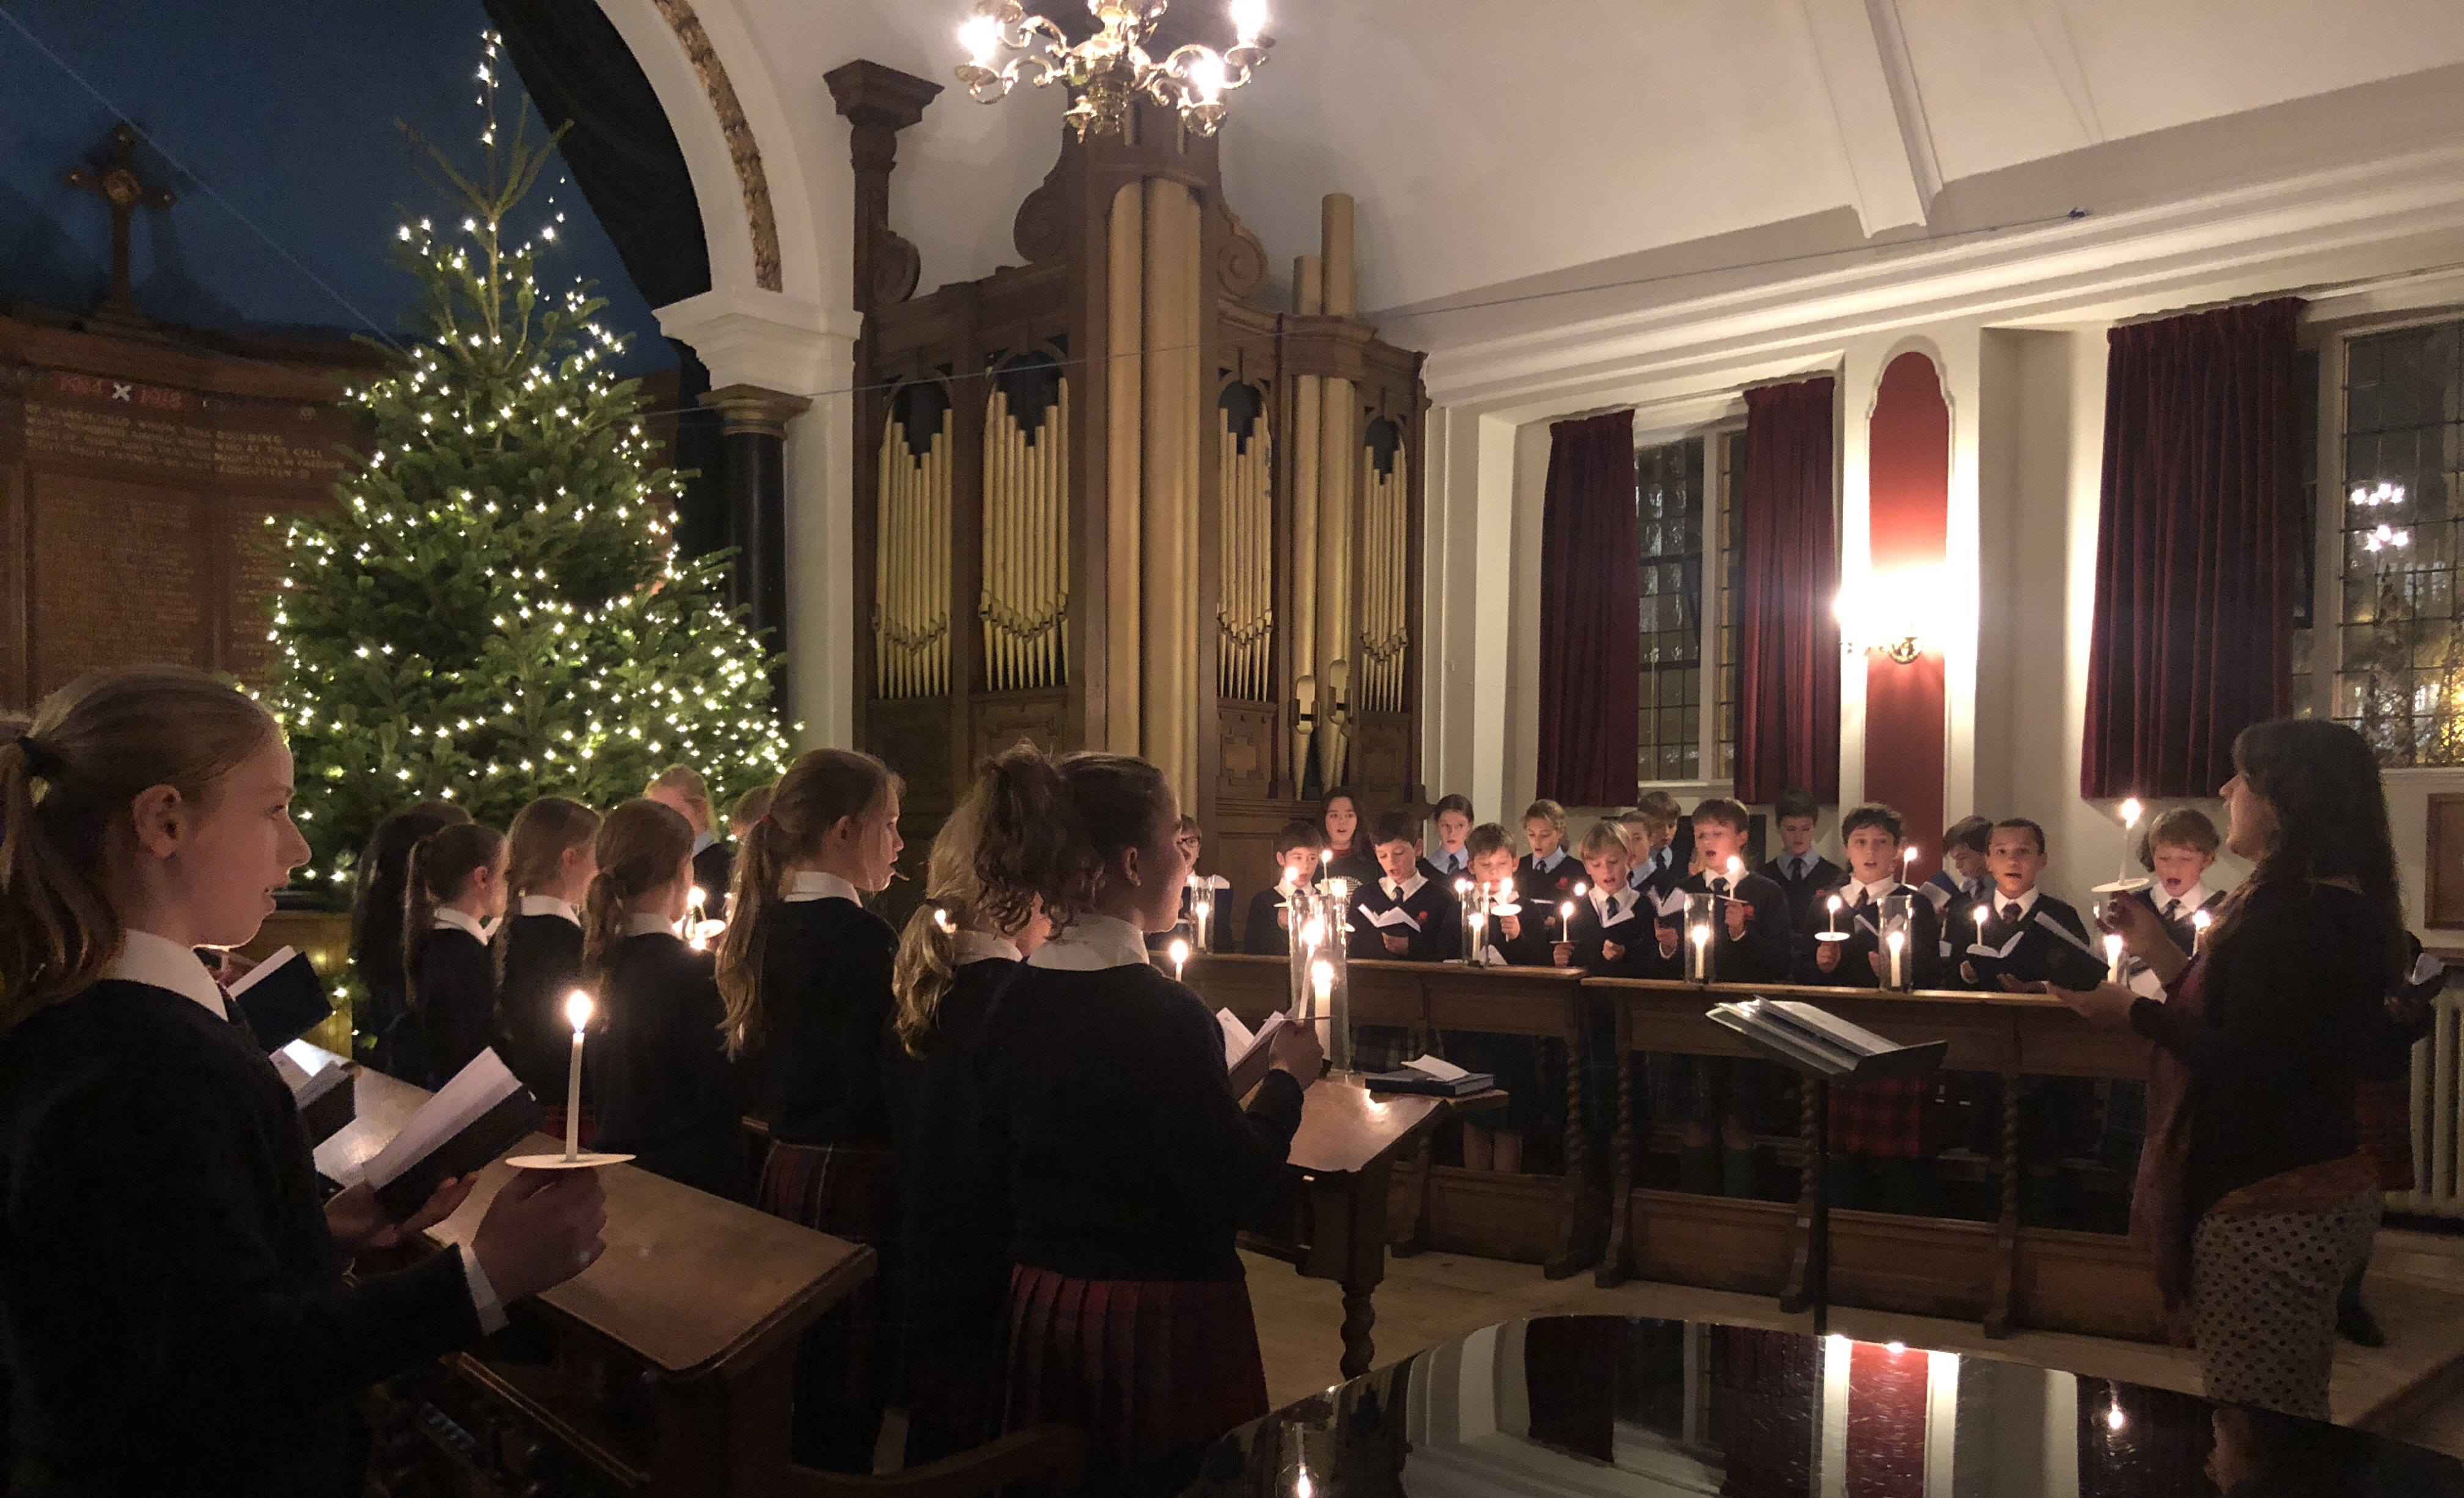 Headmaster's Welcome and Virtual Tour